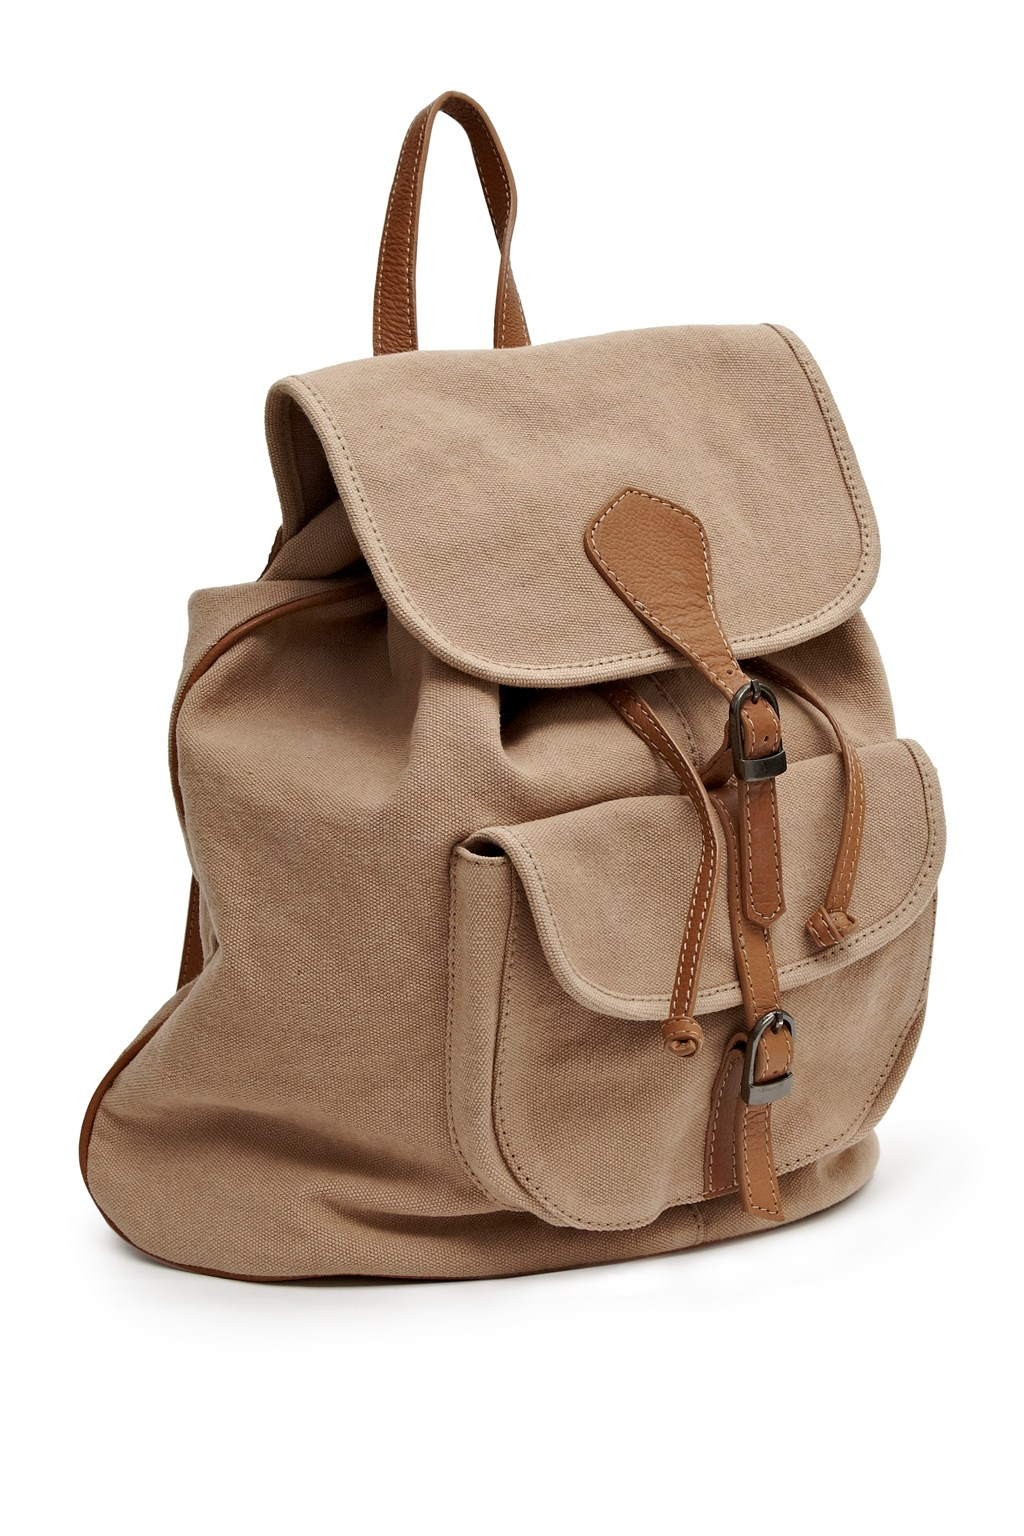 Hemmingway Canvas Backpack  e9e9747e3